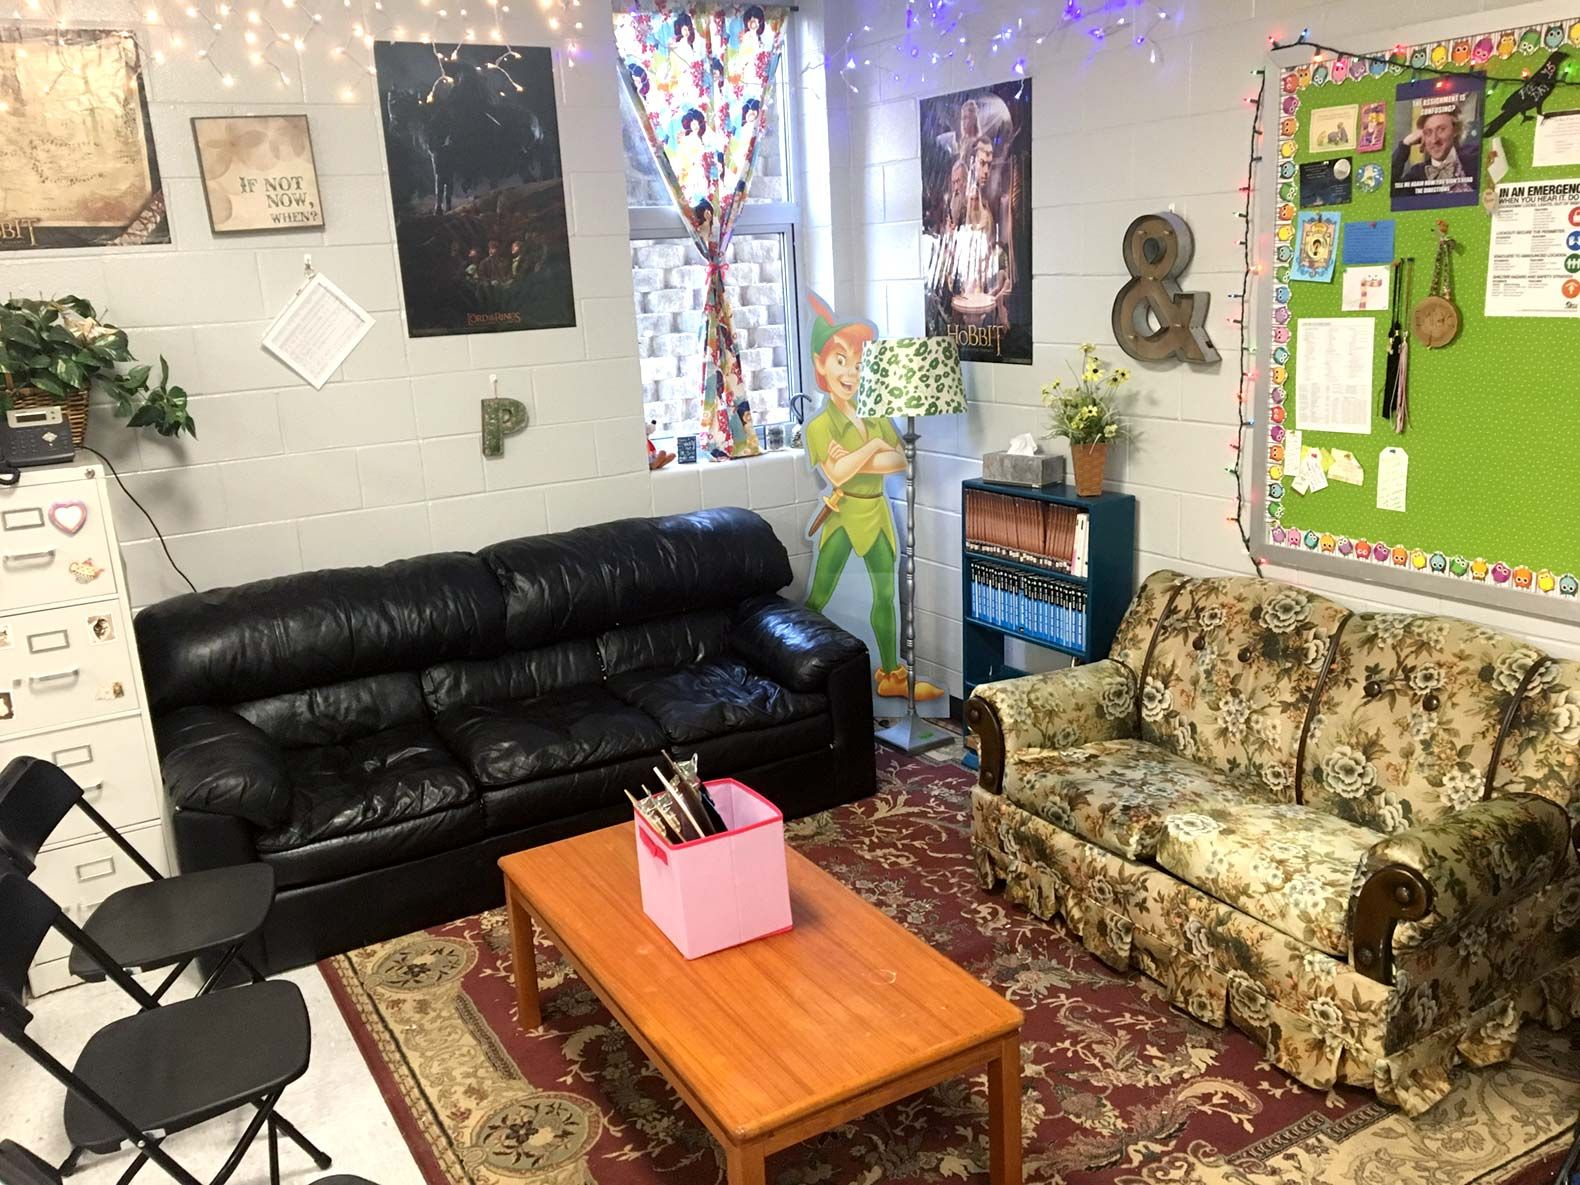 With a $200 grant from the PTSA—and furniture donated by a friend—Emily Polak added a couch, a love seat, a coffee table, two rugs, and eight folding chairs to her classroom.